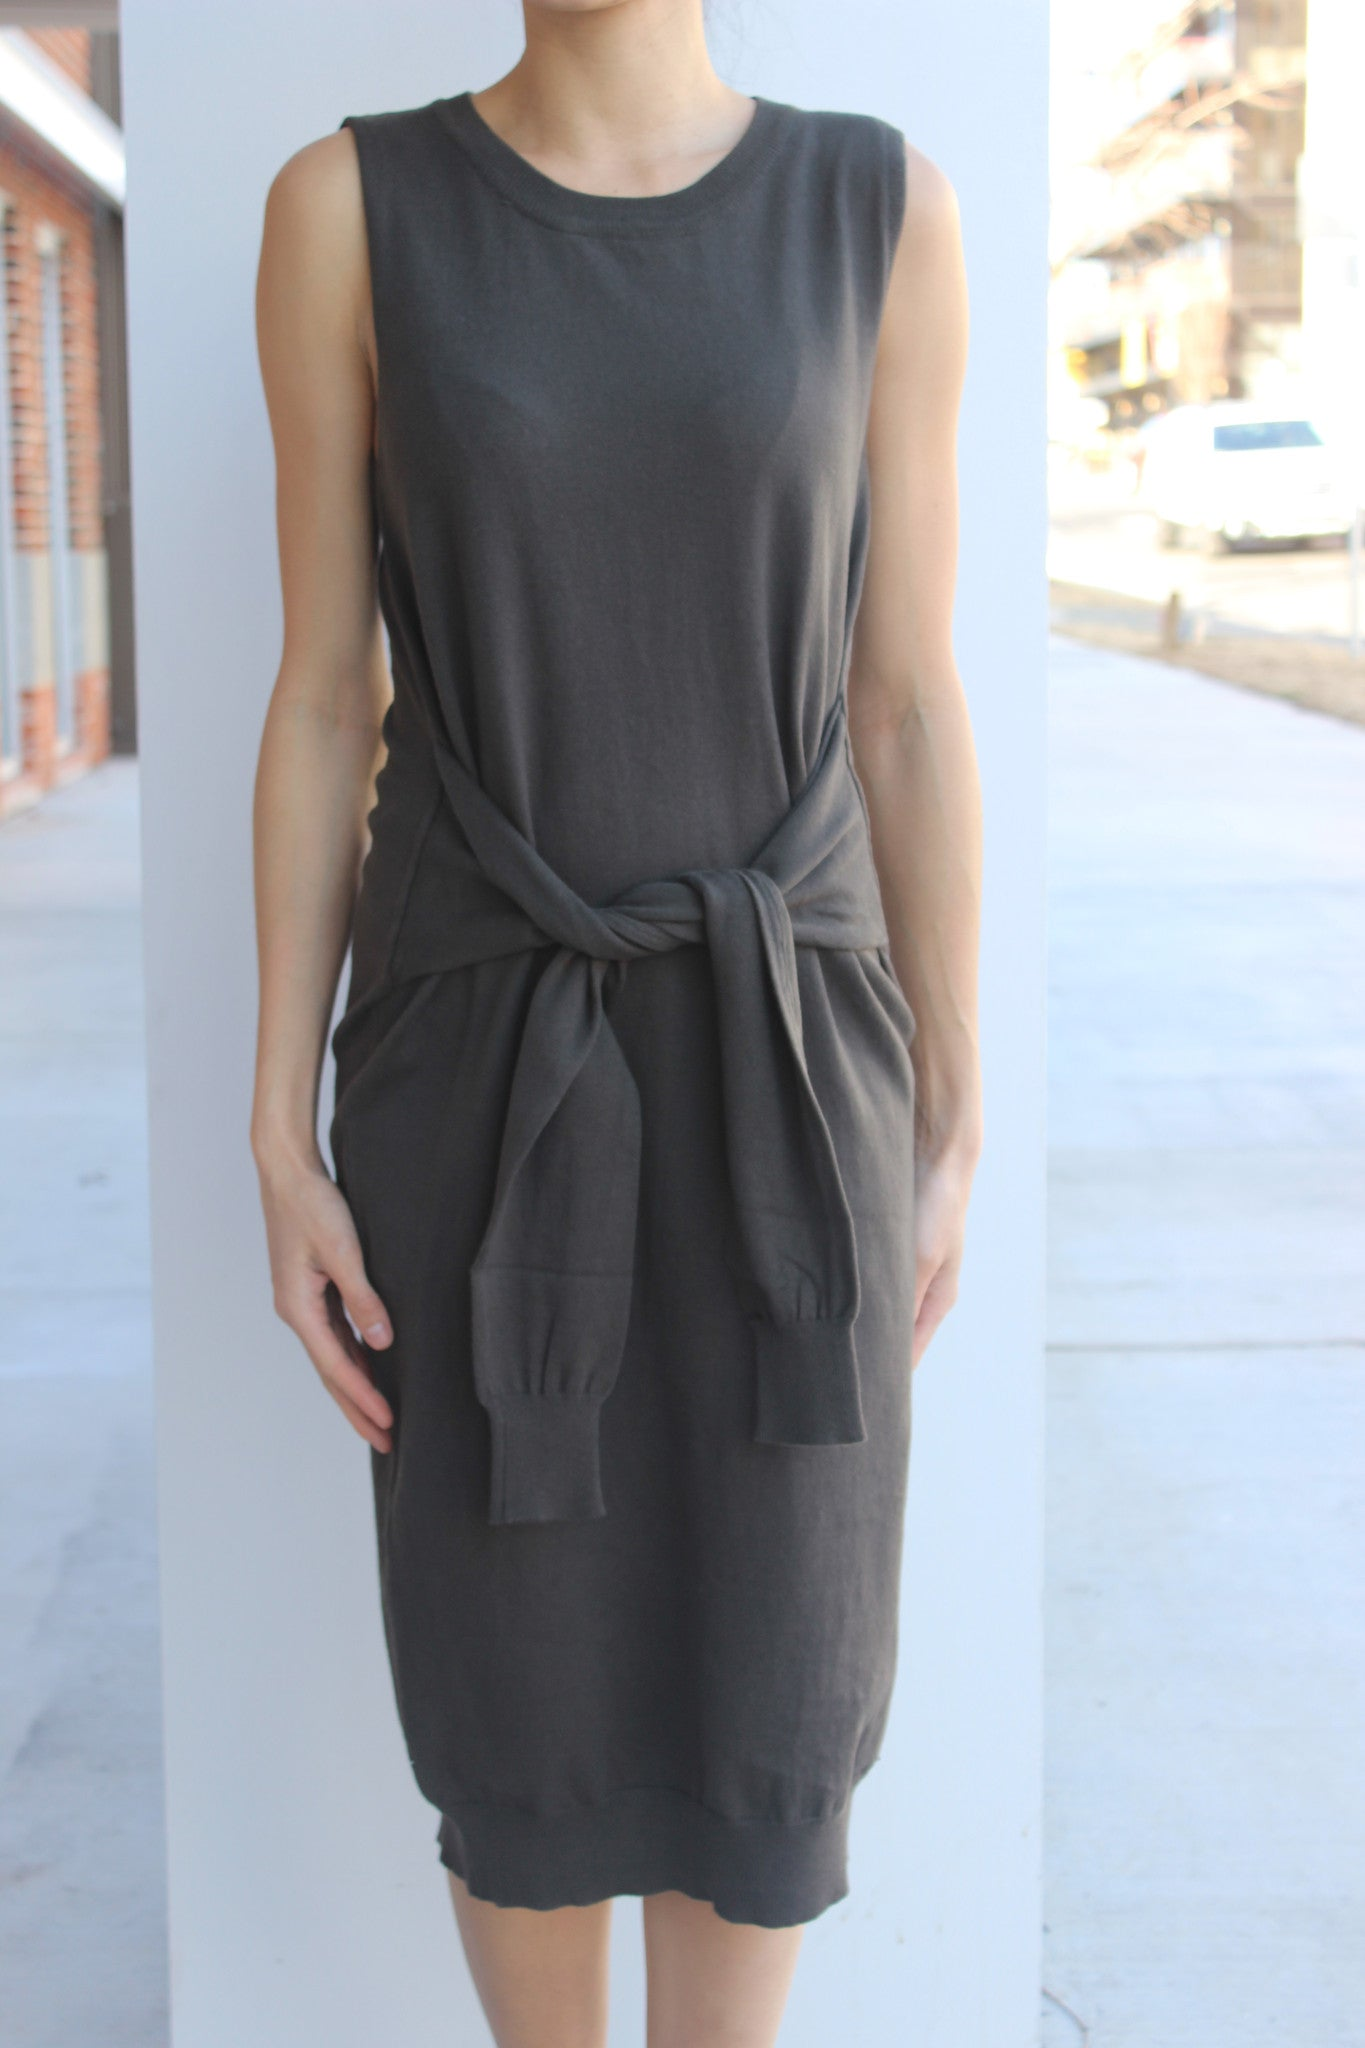 Wrap & Tie S/L Dress